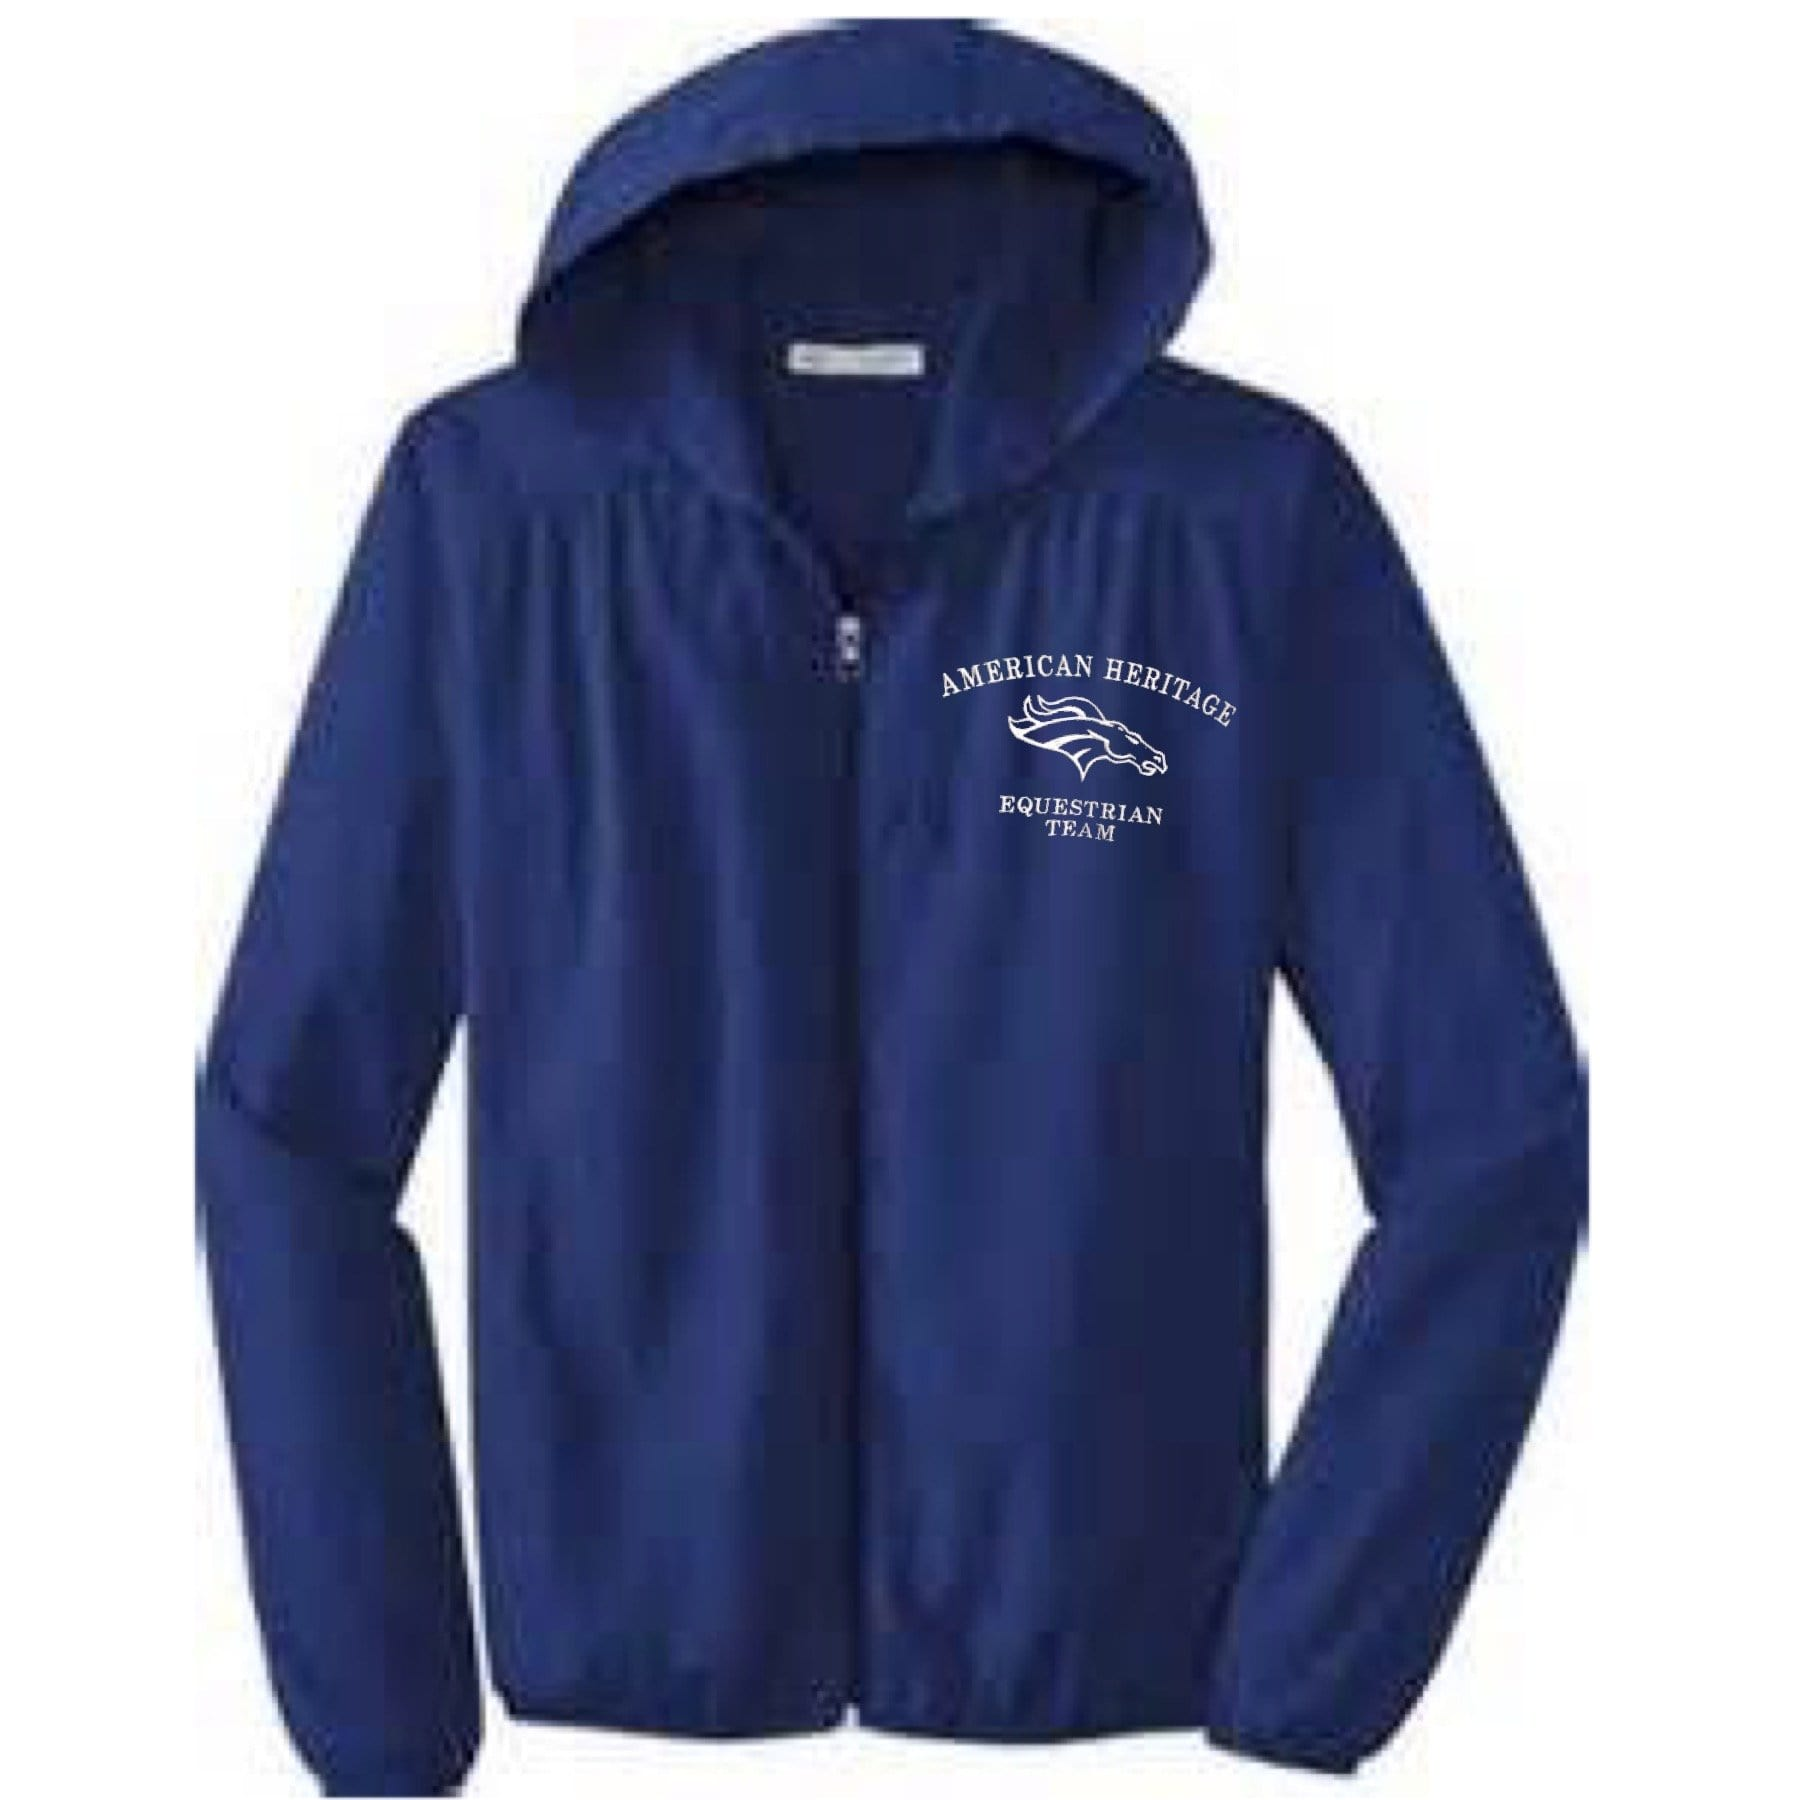 Equestrian Team Apparel Custom Team Shirts XS / Navy / Name American Heritage IEA Rain Jacket w/hood equestrian team apparel online tack store mobile tack store custom farm apparel custom show stable clothing equestrian lifestyle horse show clothing riding clothes horses equestrian tack store